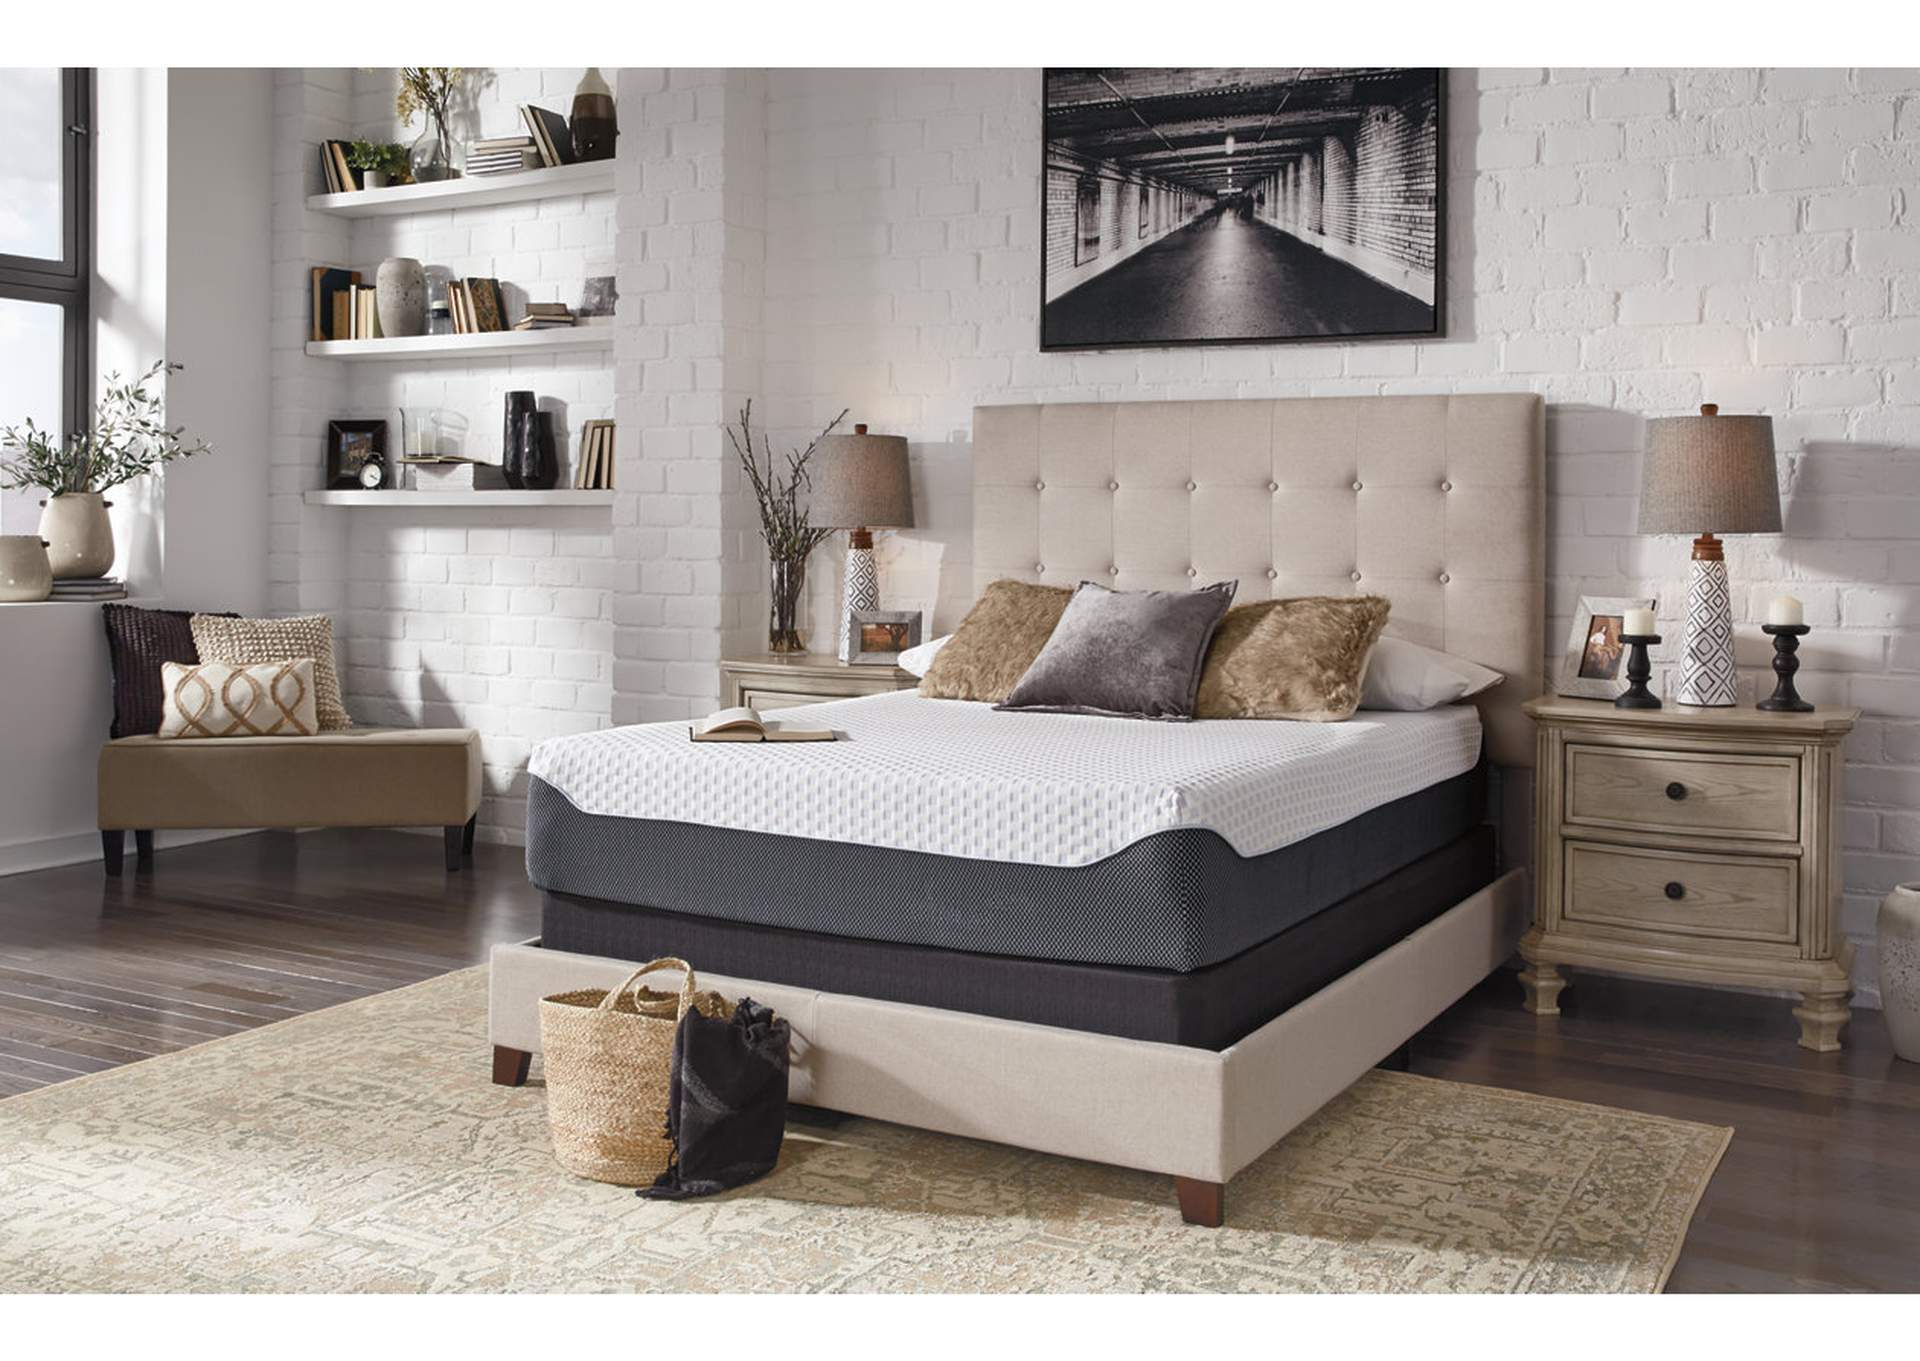 12 Inch Chime Elite Full Memory Foam Mattress in a box,Sierra Sleep by Ashley